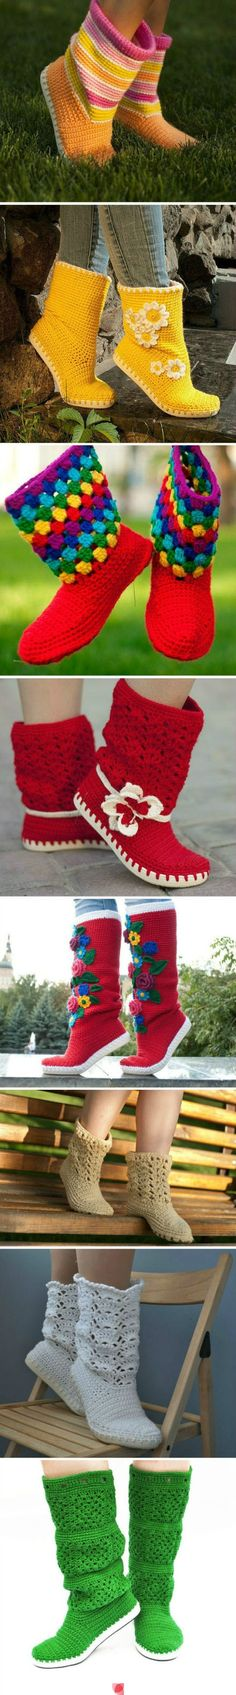 8 crochet boots. I really like the red butterfly ones